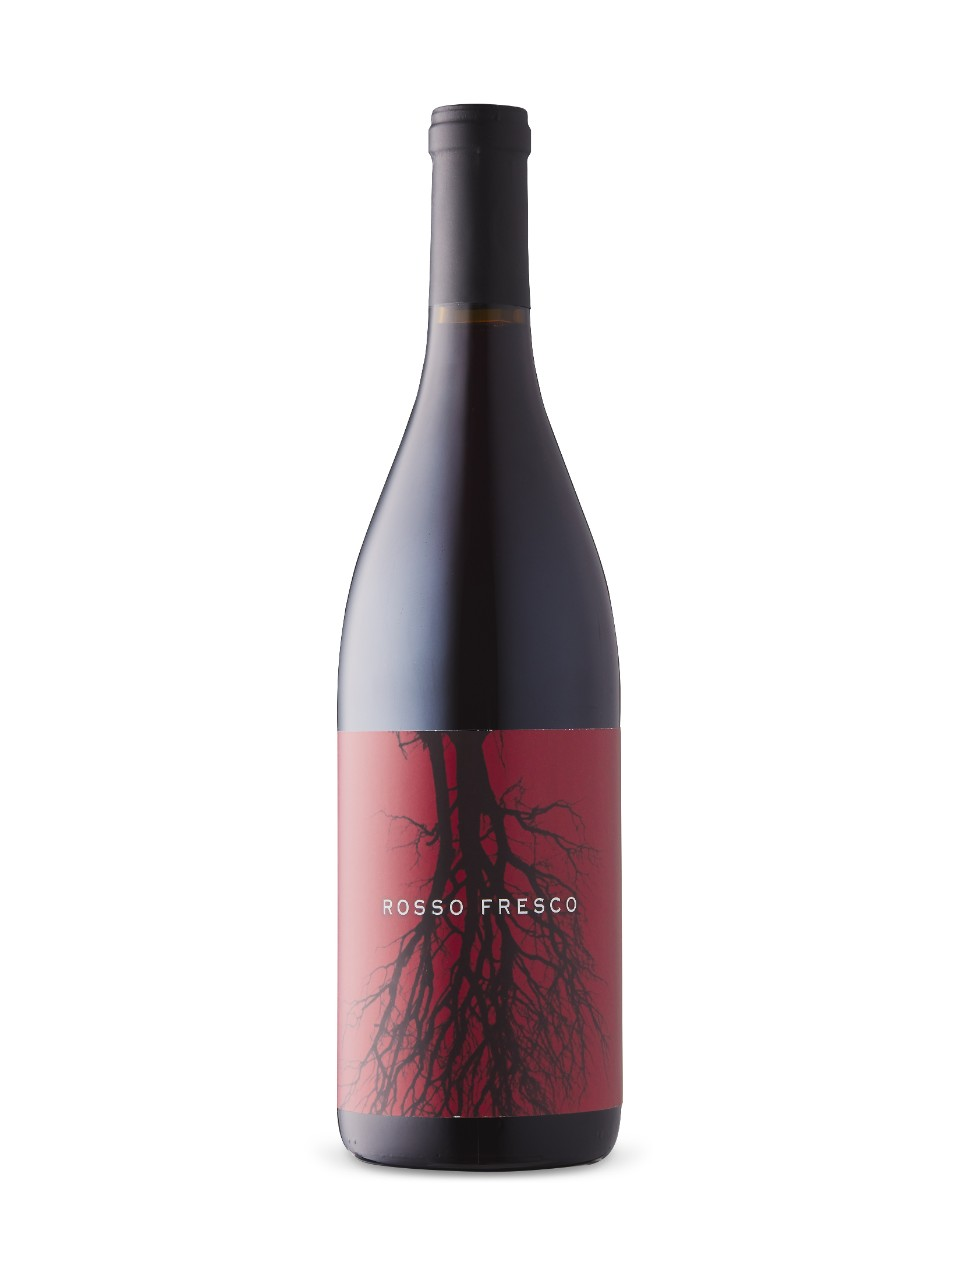 Rosso Fresco Channing Daughters 2018 à partir de LCBO